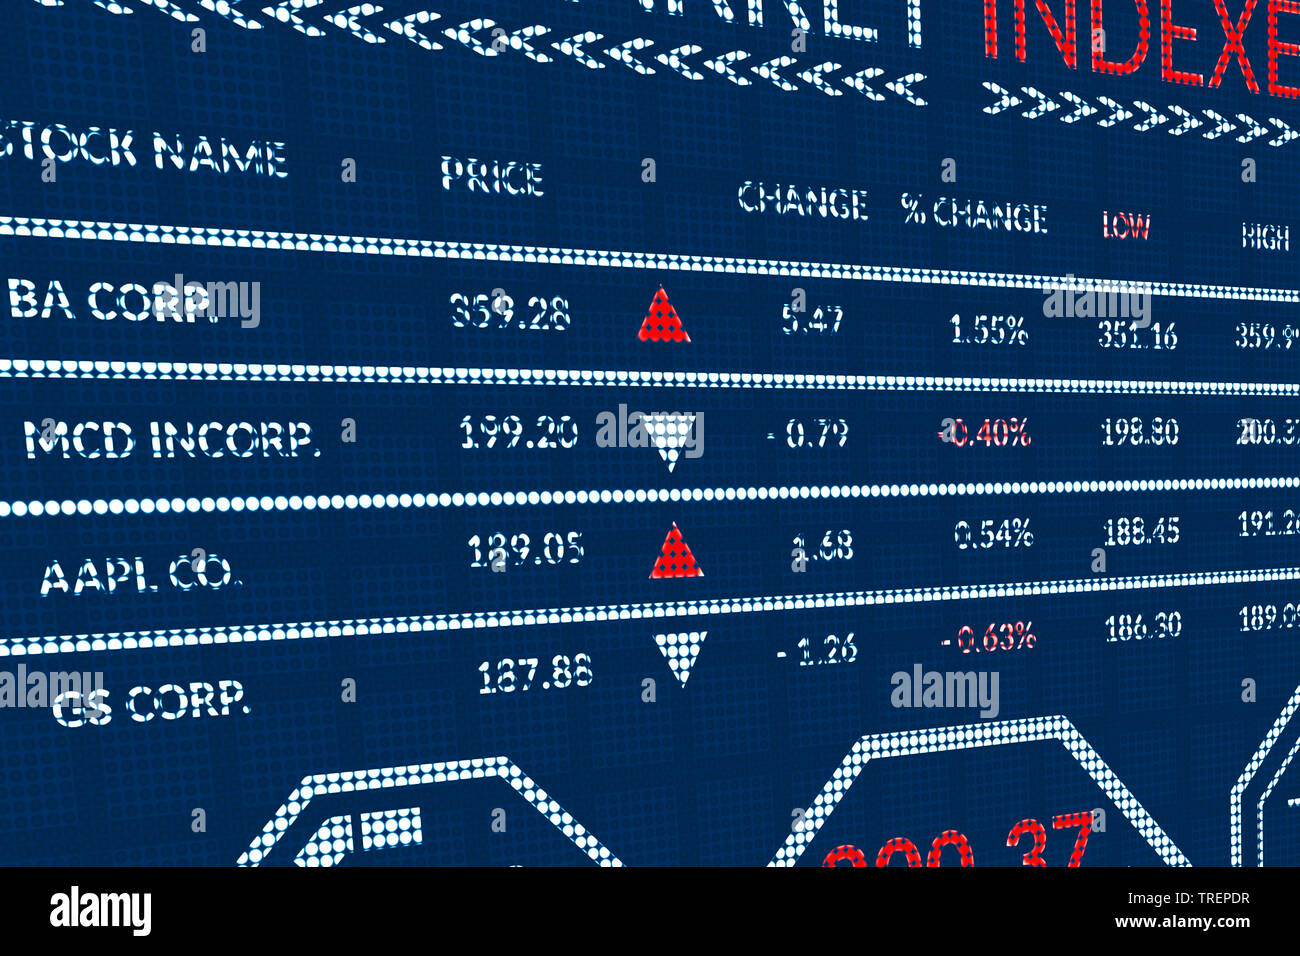 Stock market indexes or forex trade data on pixels screen. Perspective view of display monitor or information table with graphs, charts, indexes - Stock Image